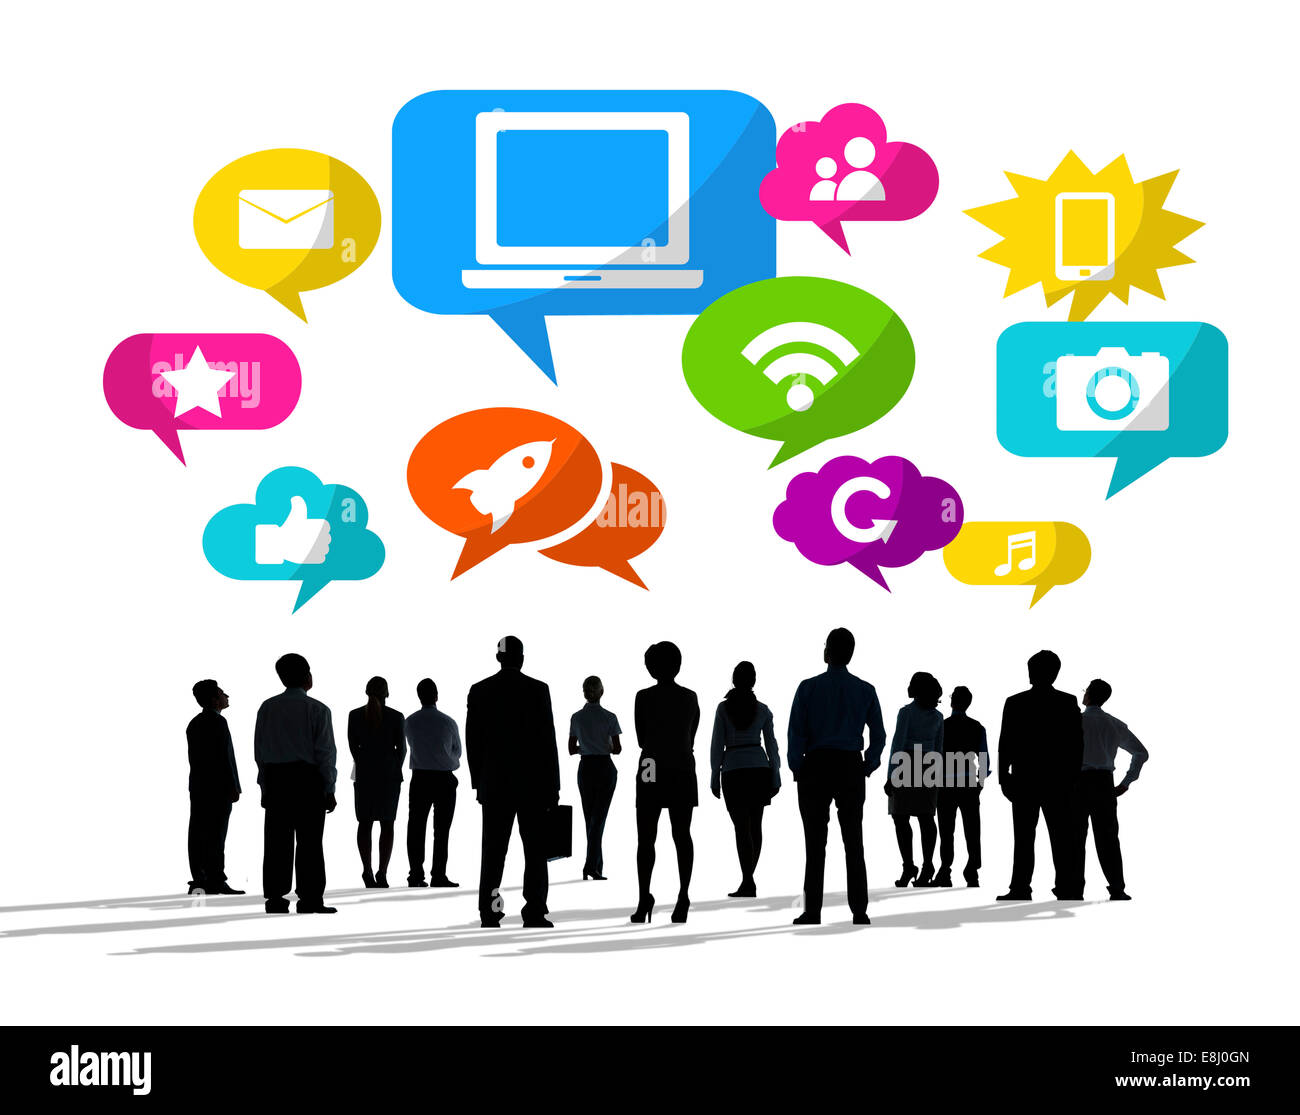 Silhouettes of Business People Looking Up with Social Media Symbols - Stock Image